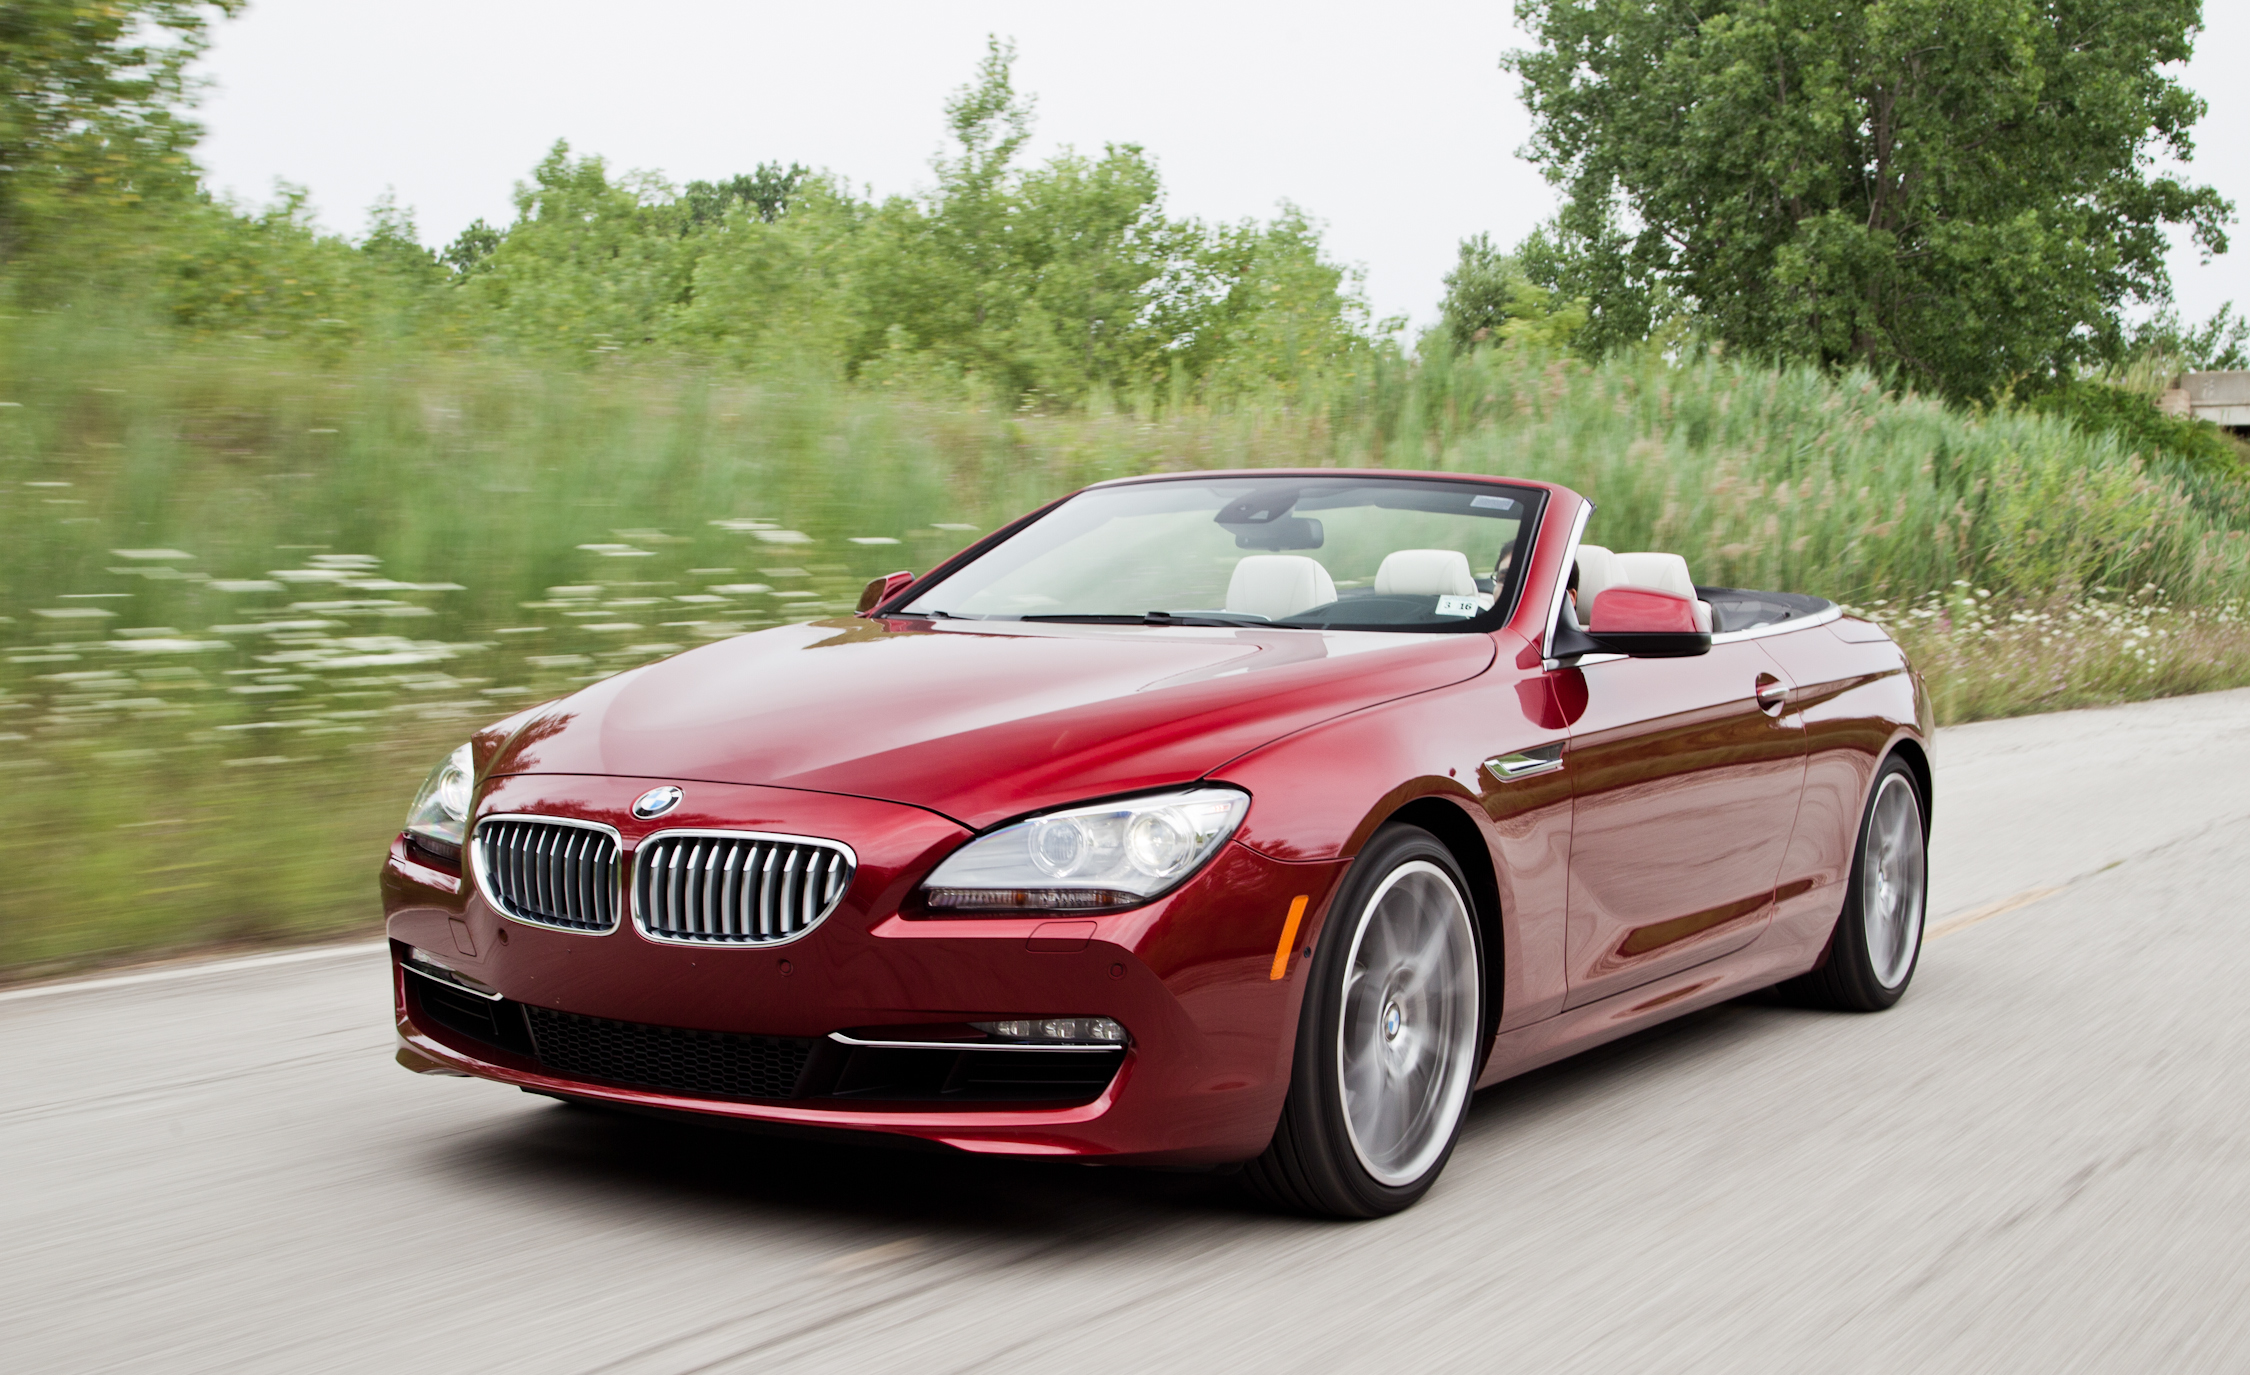 2012 BMW 650i Convertible Pictures Gallery (19 Images)